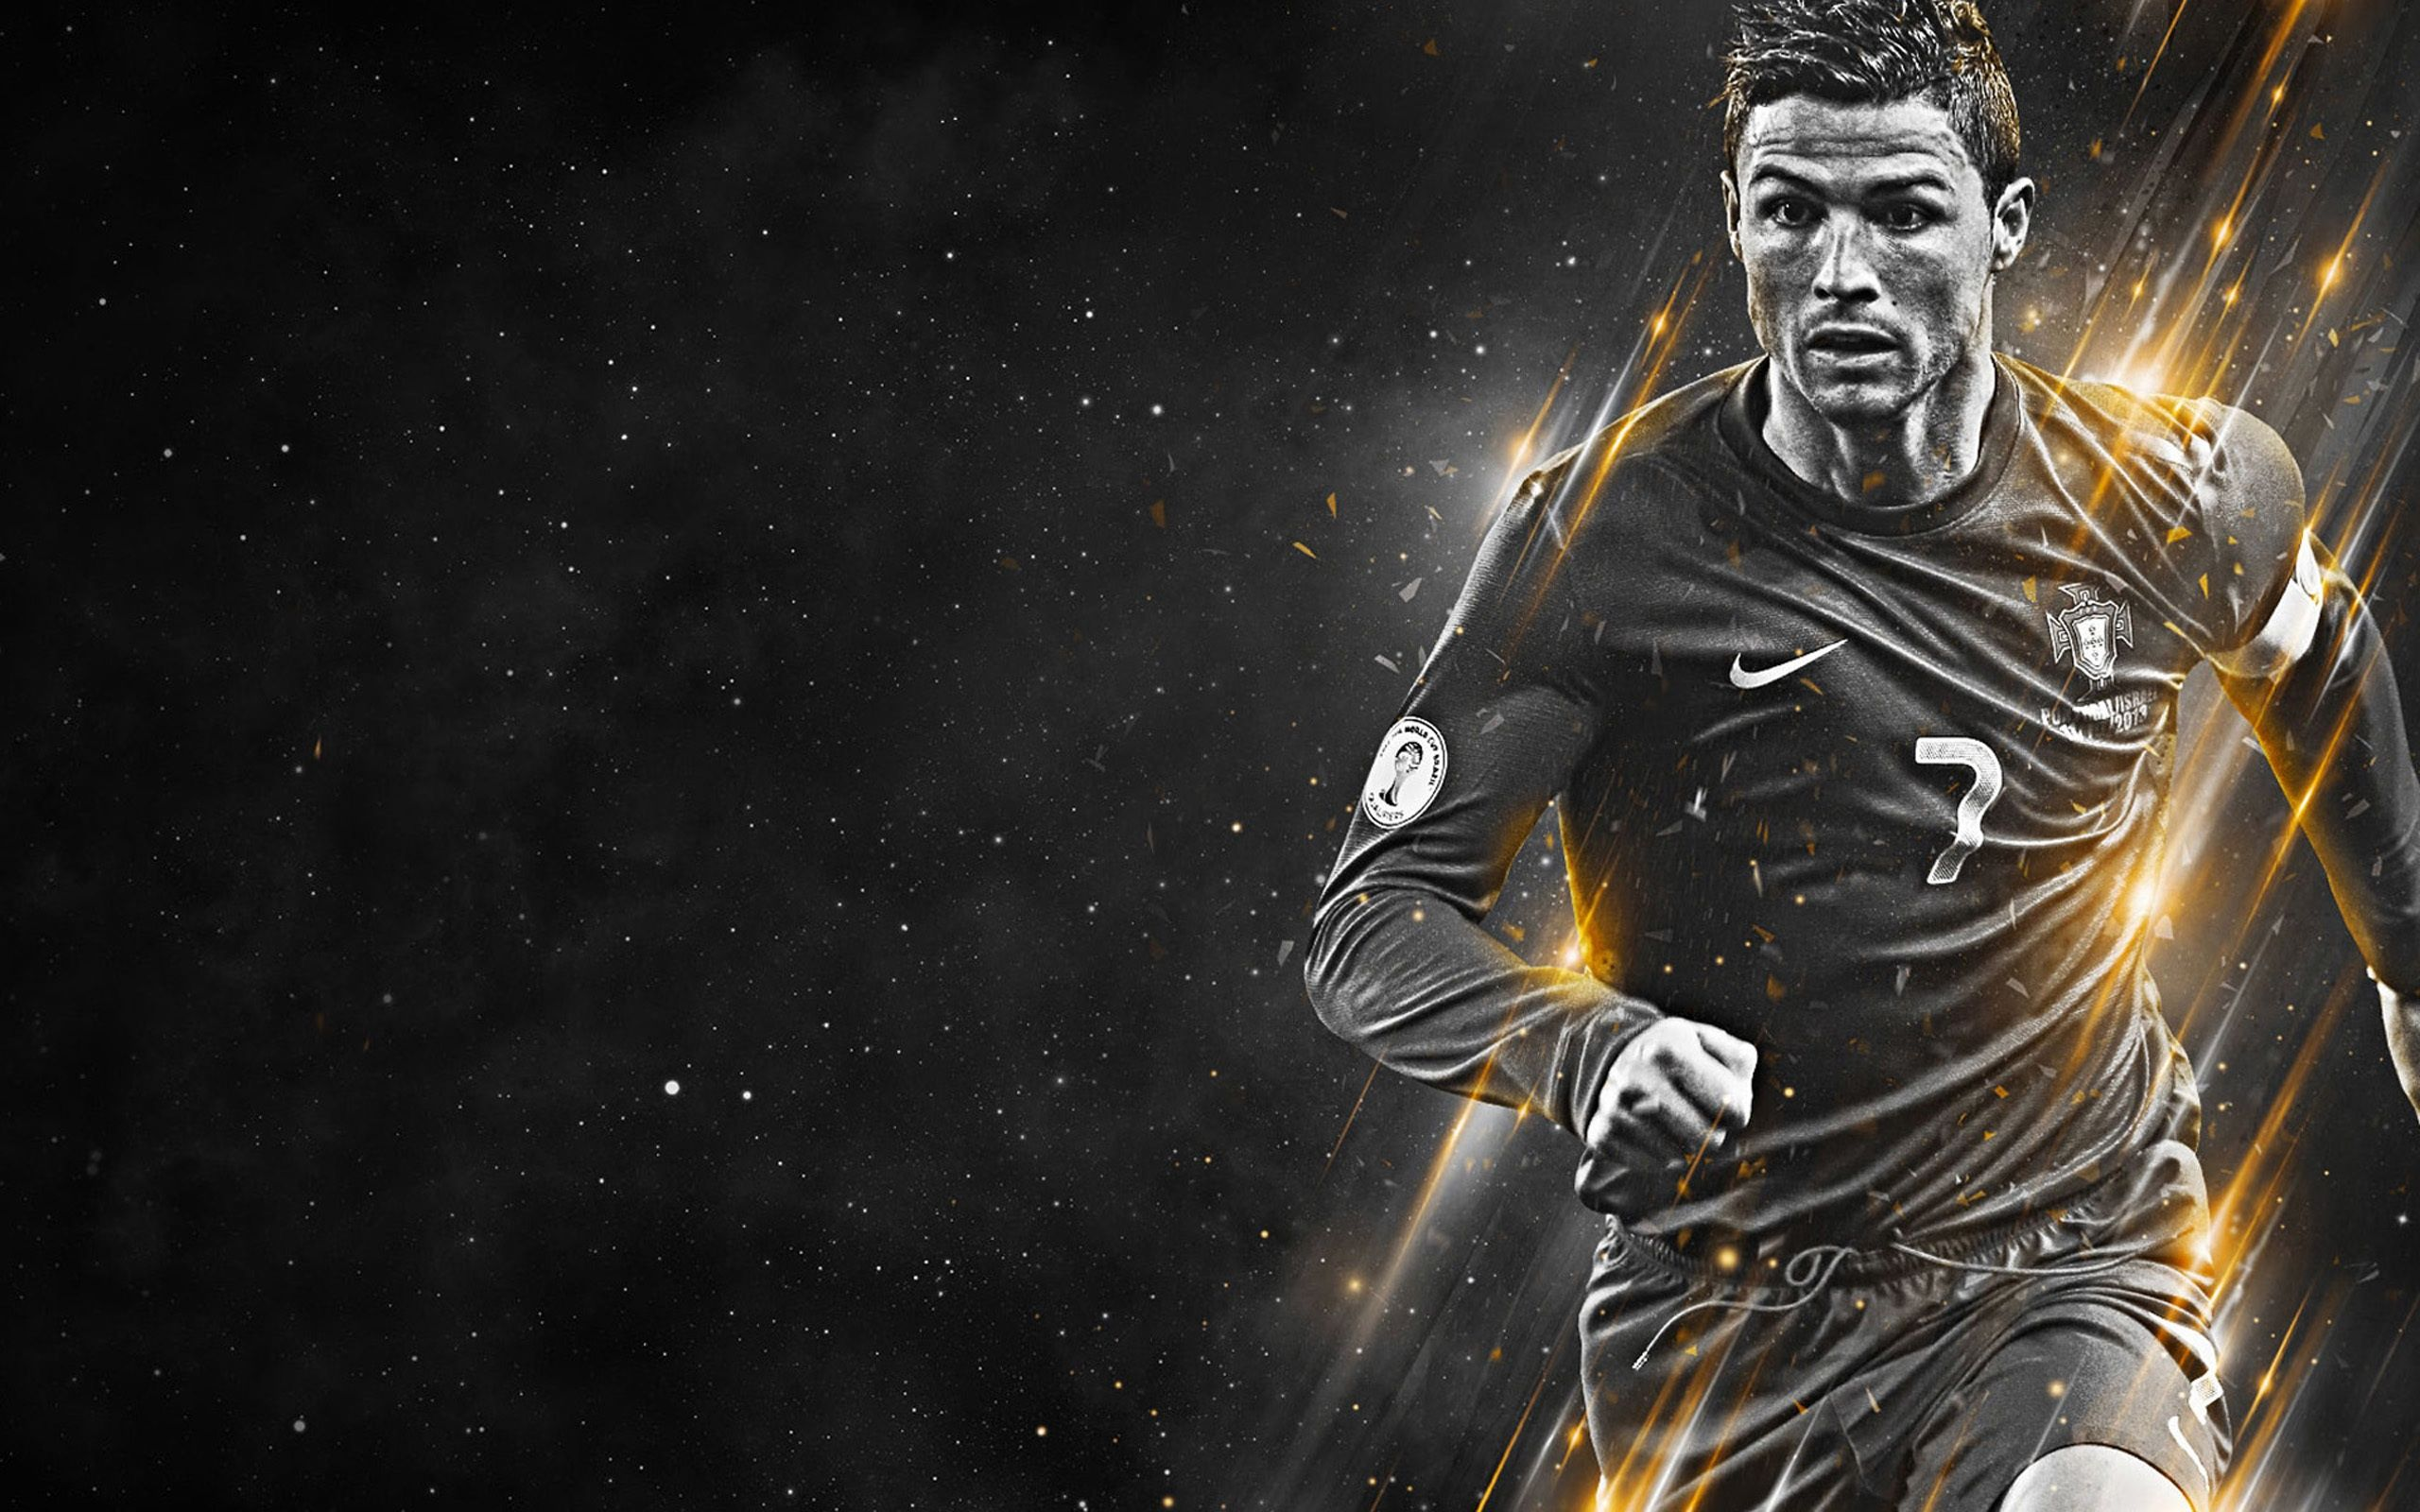 Download HD Cristiano Ronaldo Amazing Football Player